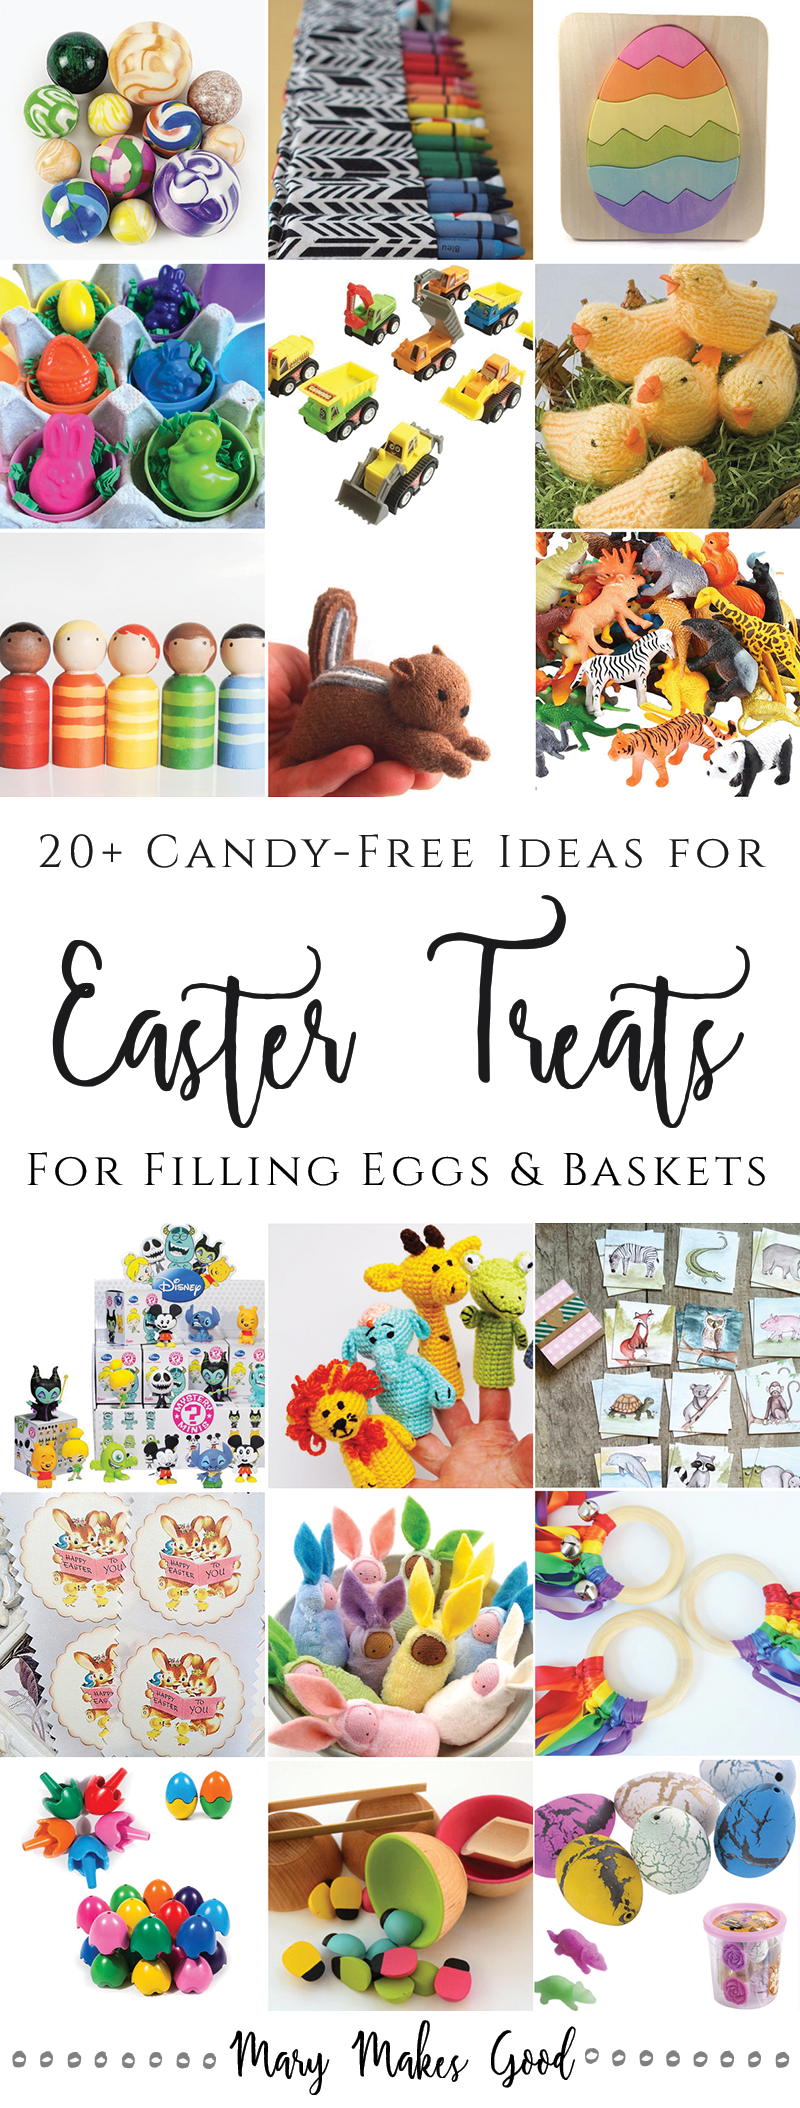 Candy Free Easter Treats